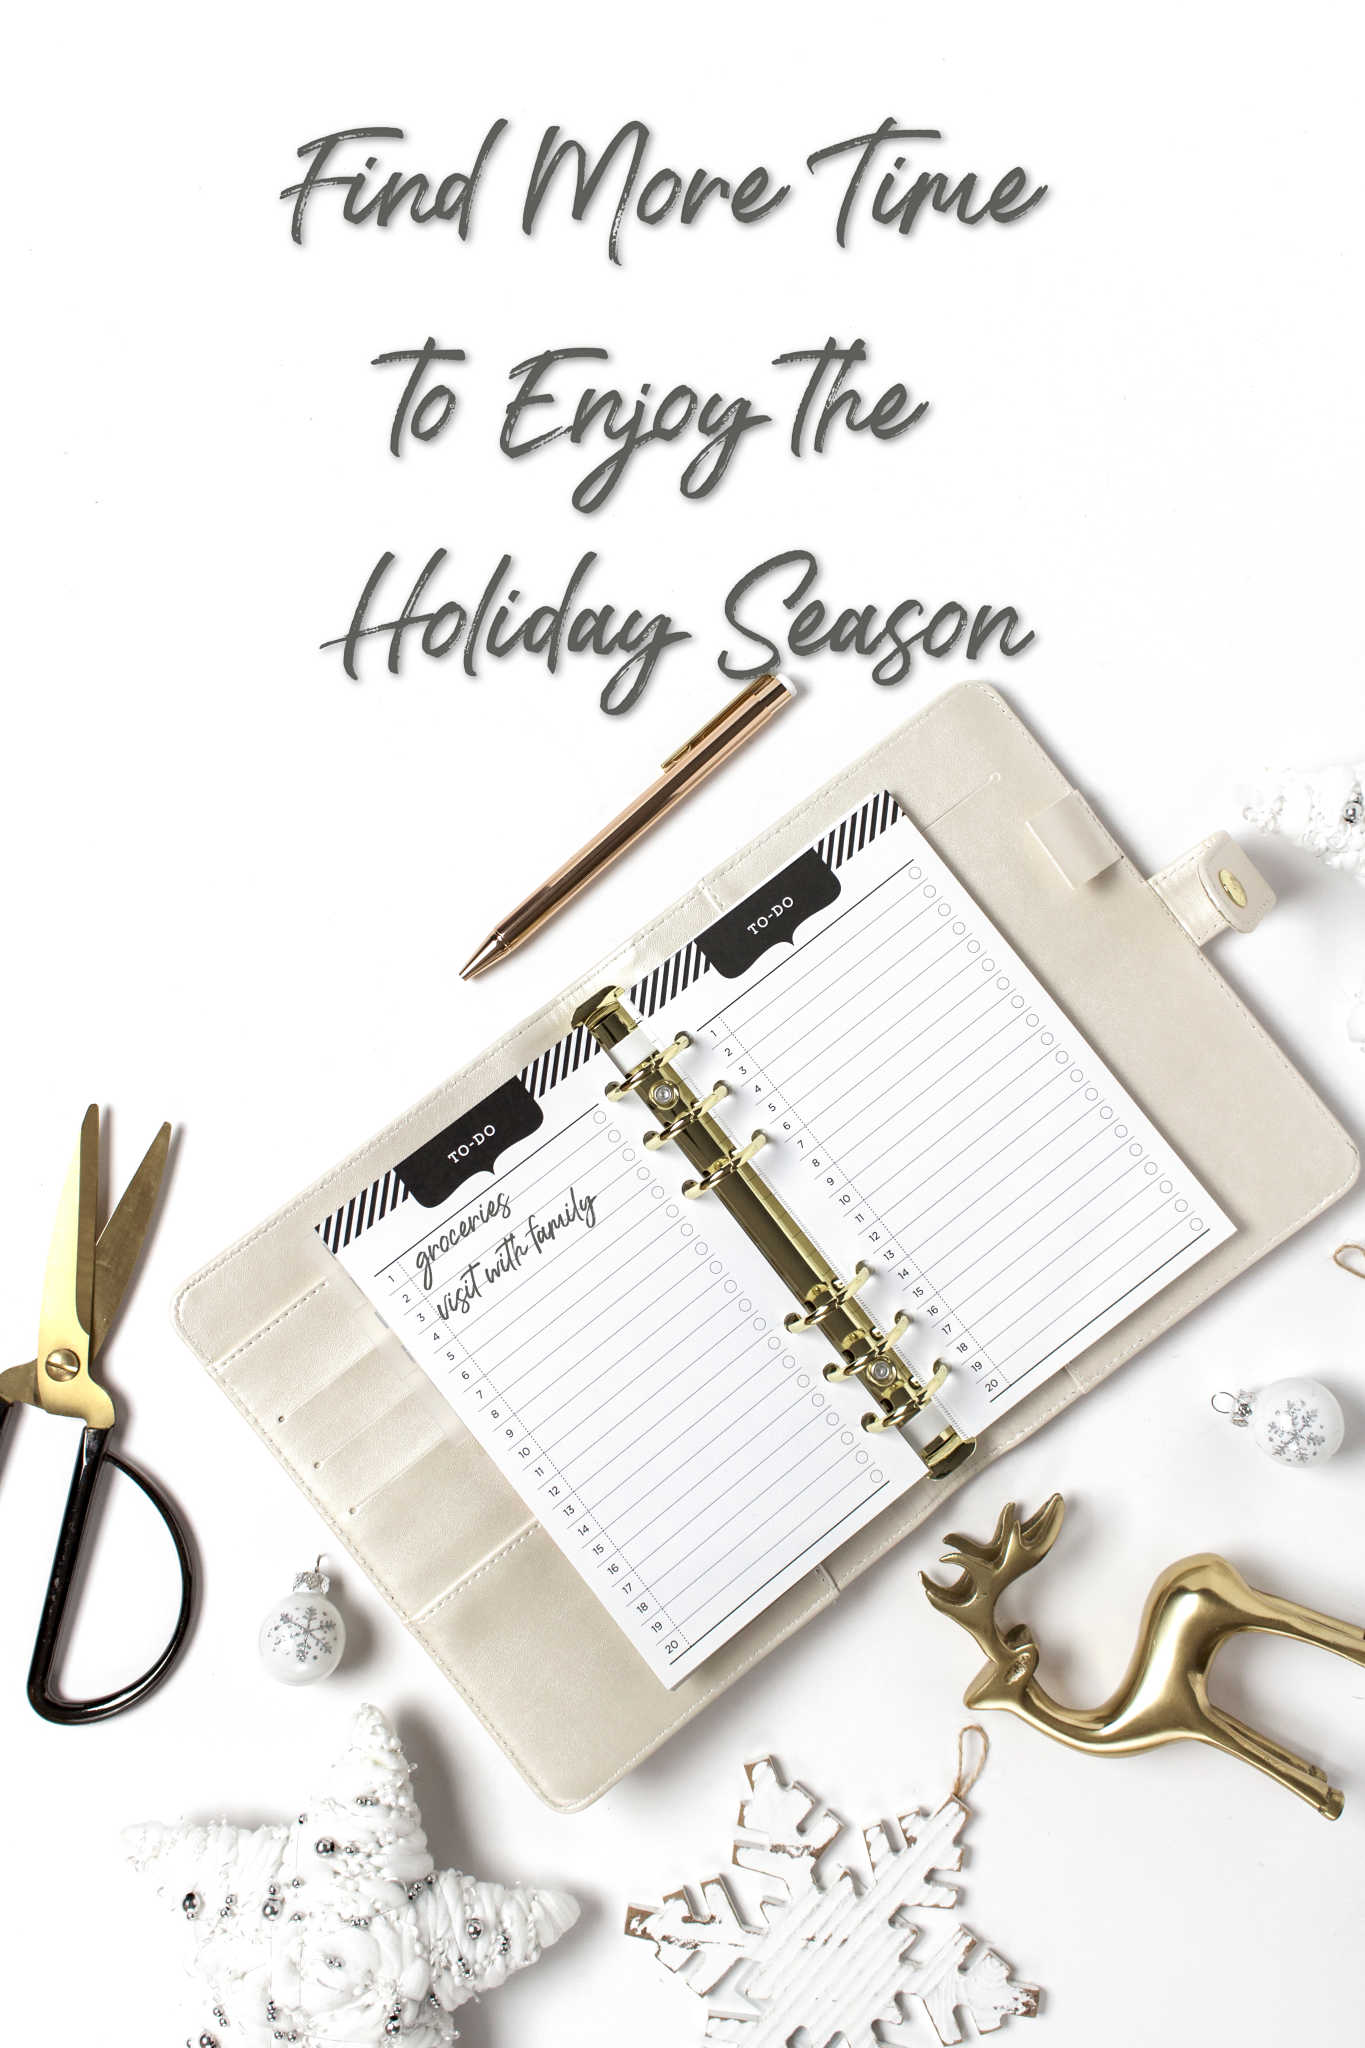 Find More Time to Enjoy the Holiday Season